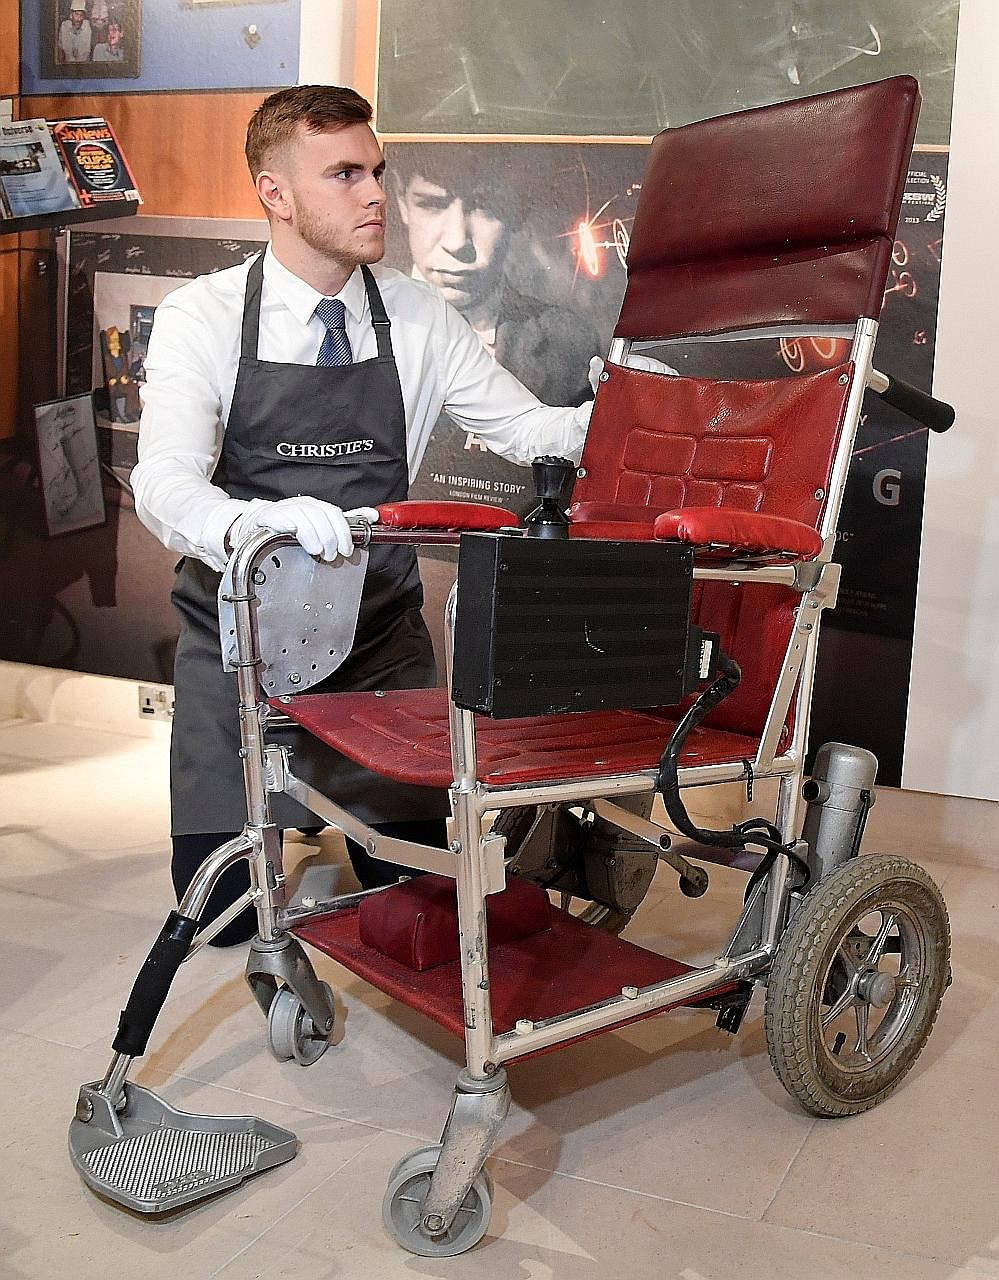 This motorised wheelchair used by British physicist Stephen Hawking, who died in March at the age of 76, was sold at auction for £296,750 (S$532,100).